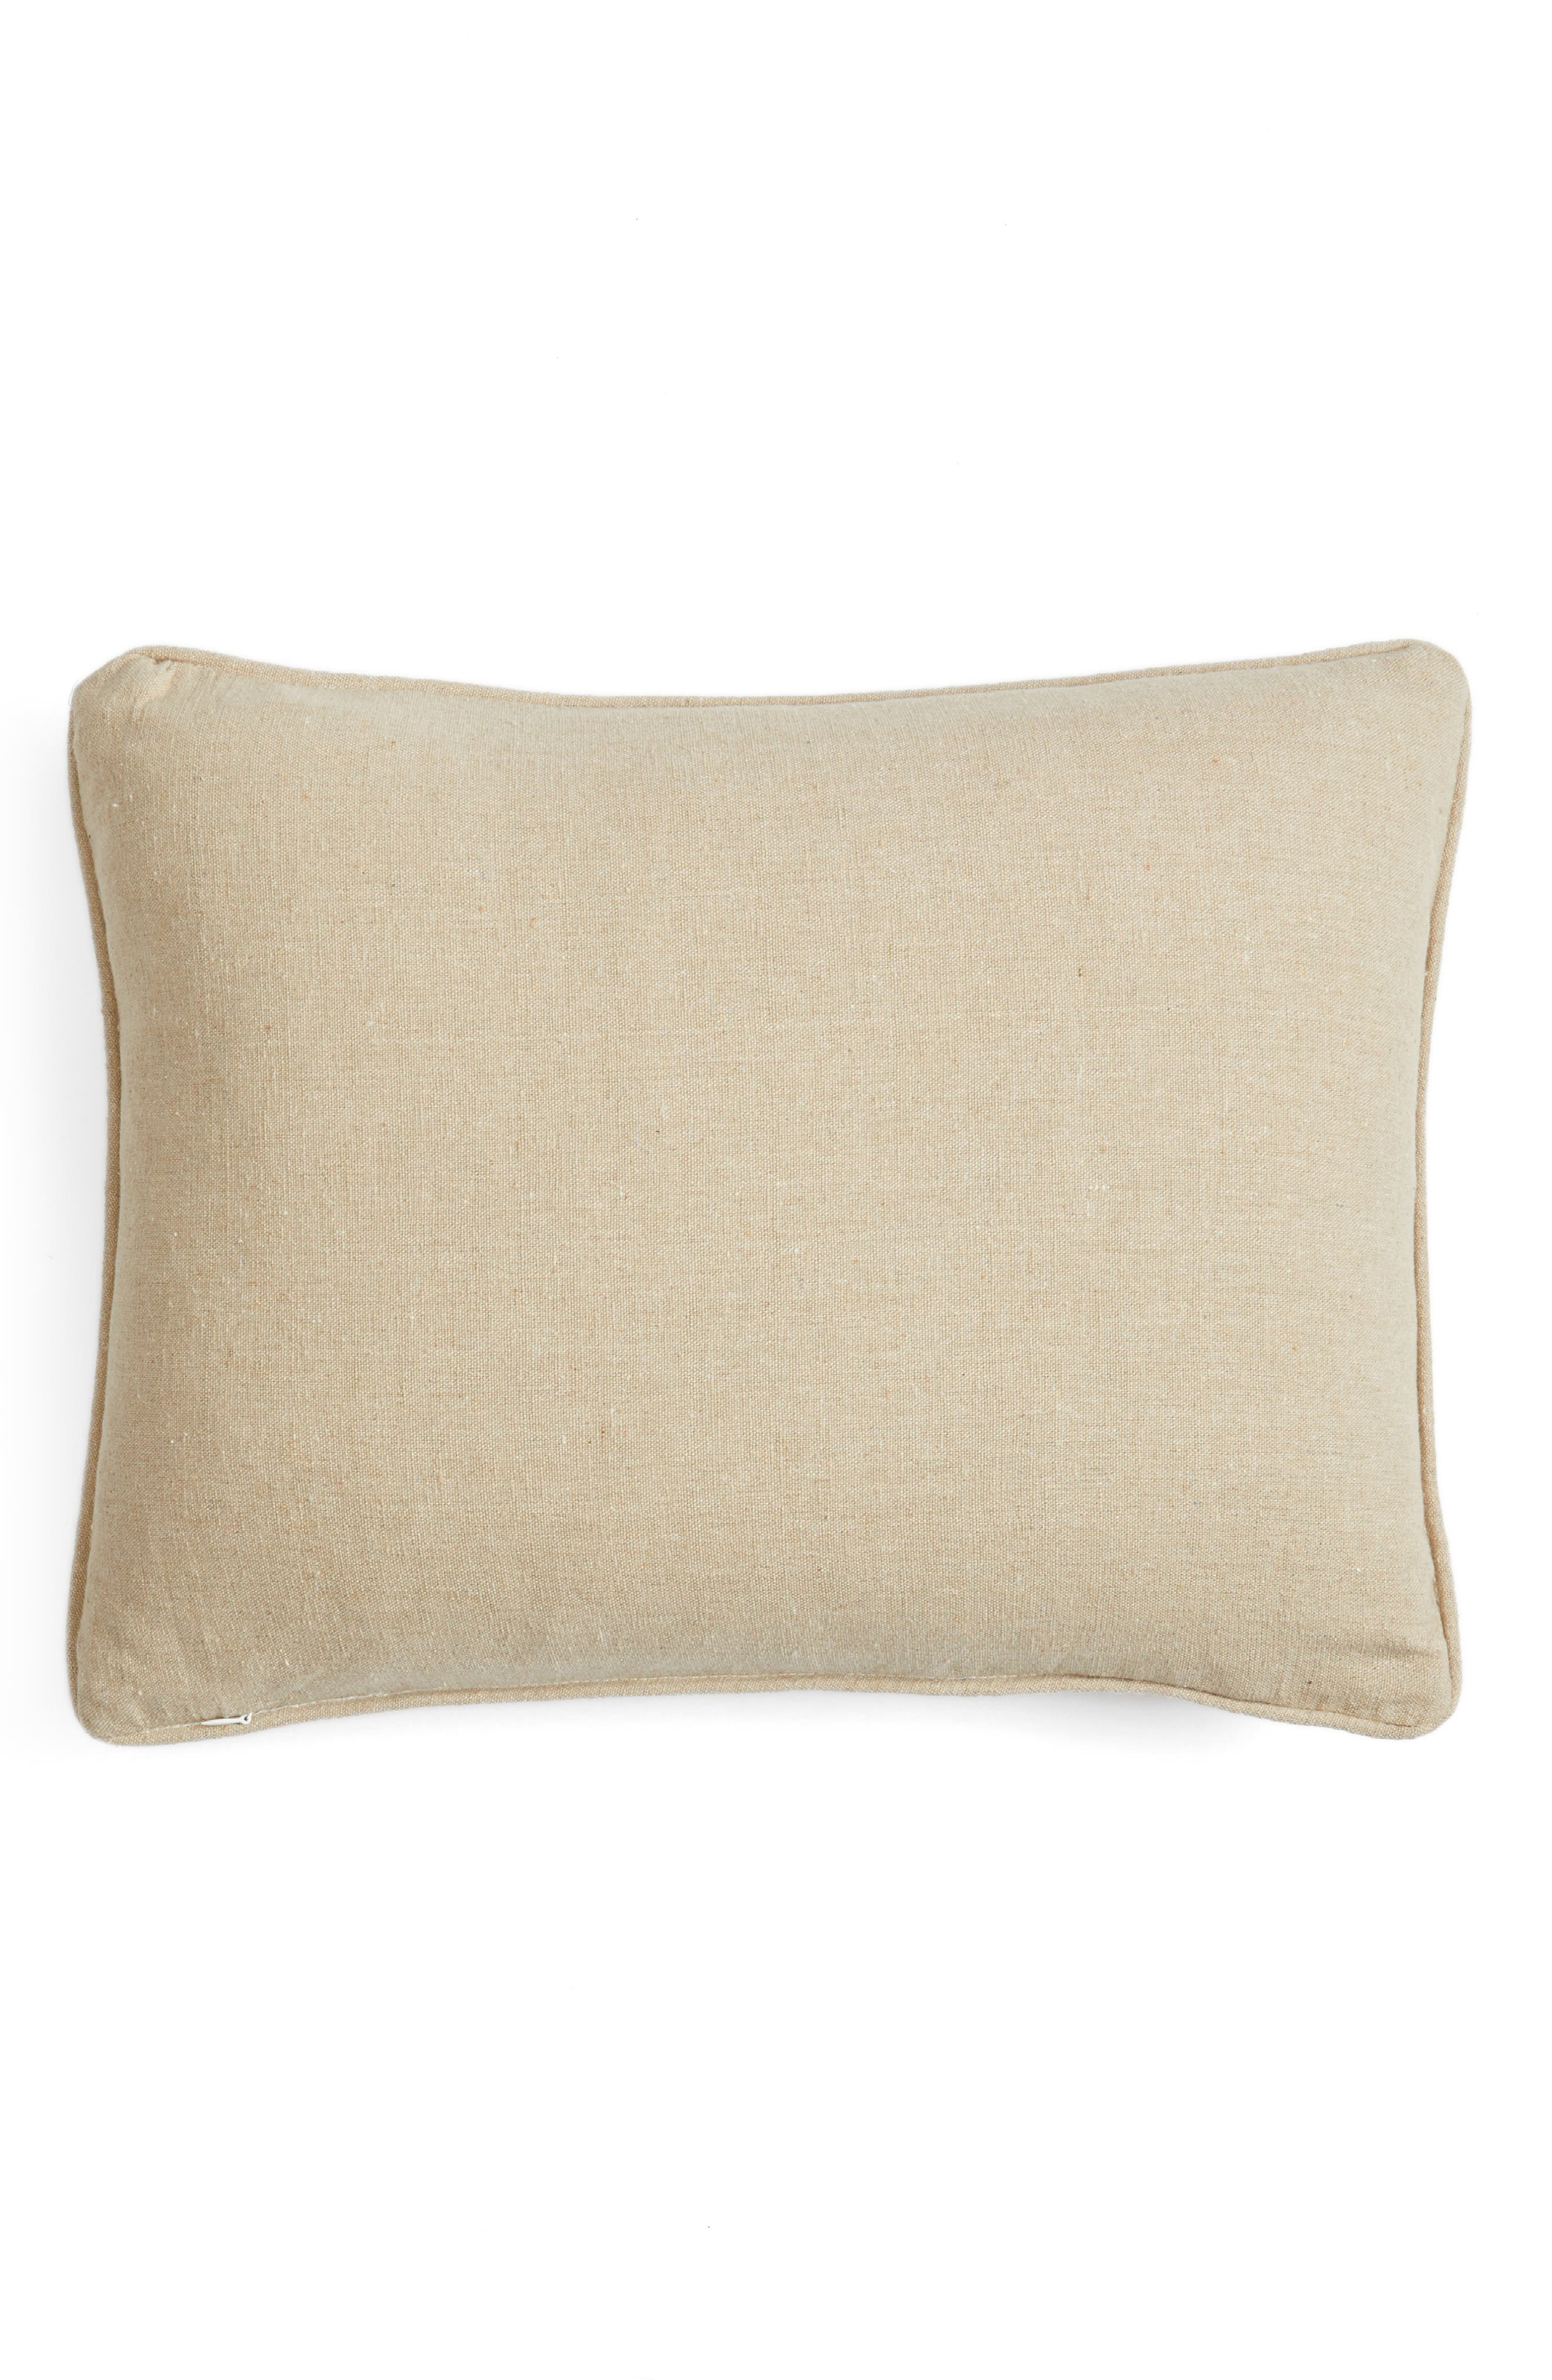 Fira Crewel Stitch Accent Pillow,                             Alternate thumbnail 2, color,                             600